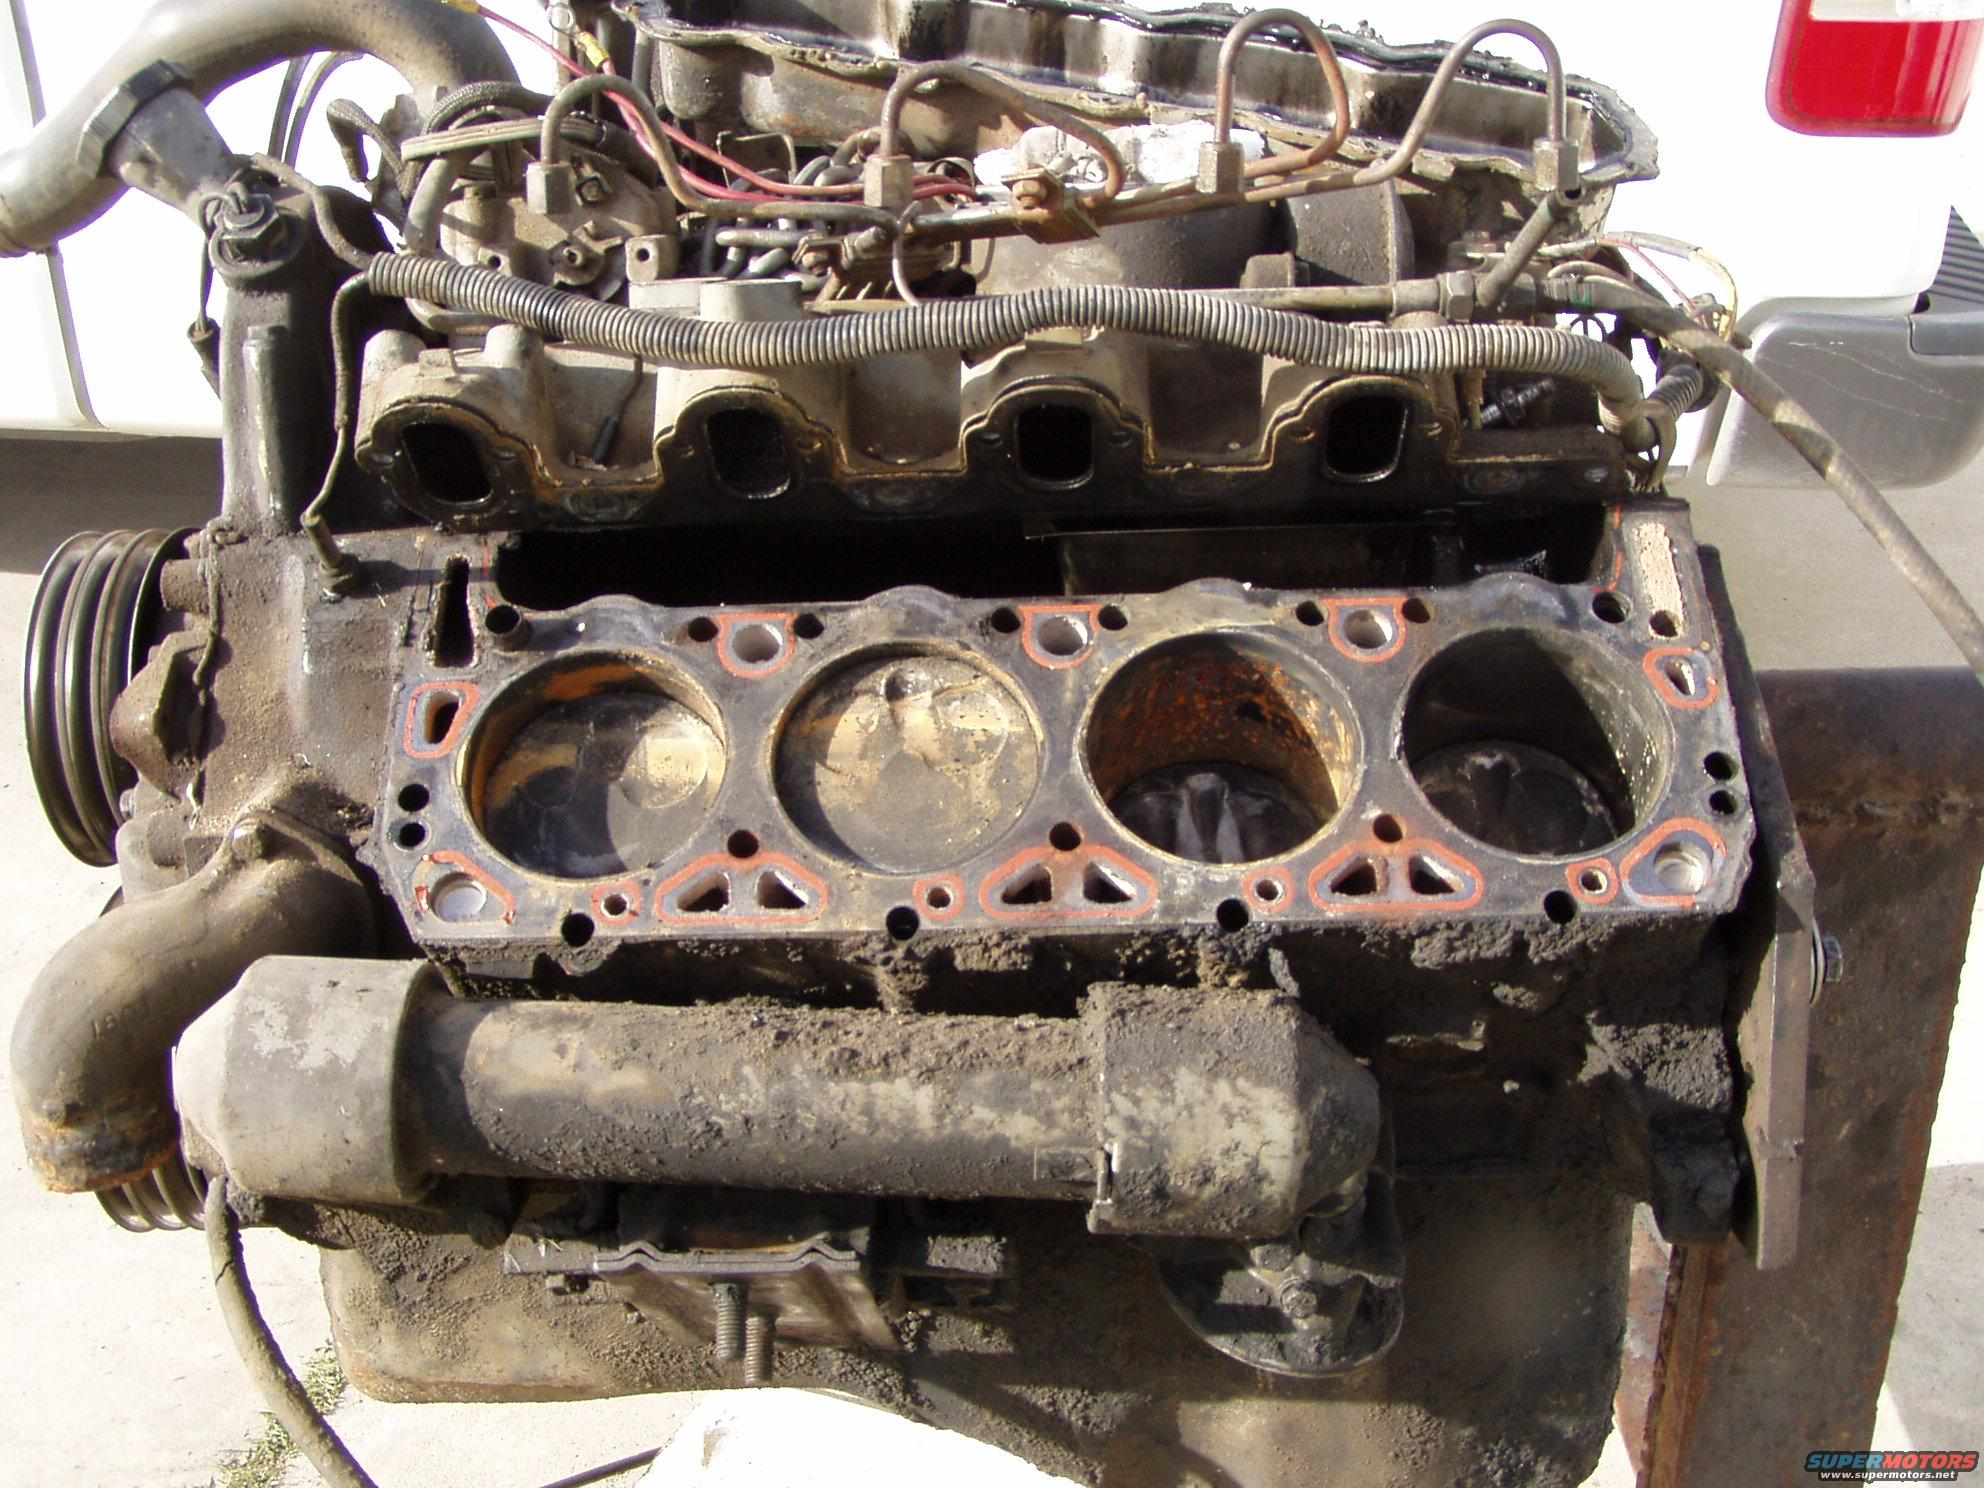 .com/around-the-camp-fire/7-3-powerstroke-with-blown-head-gaskets